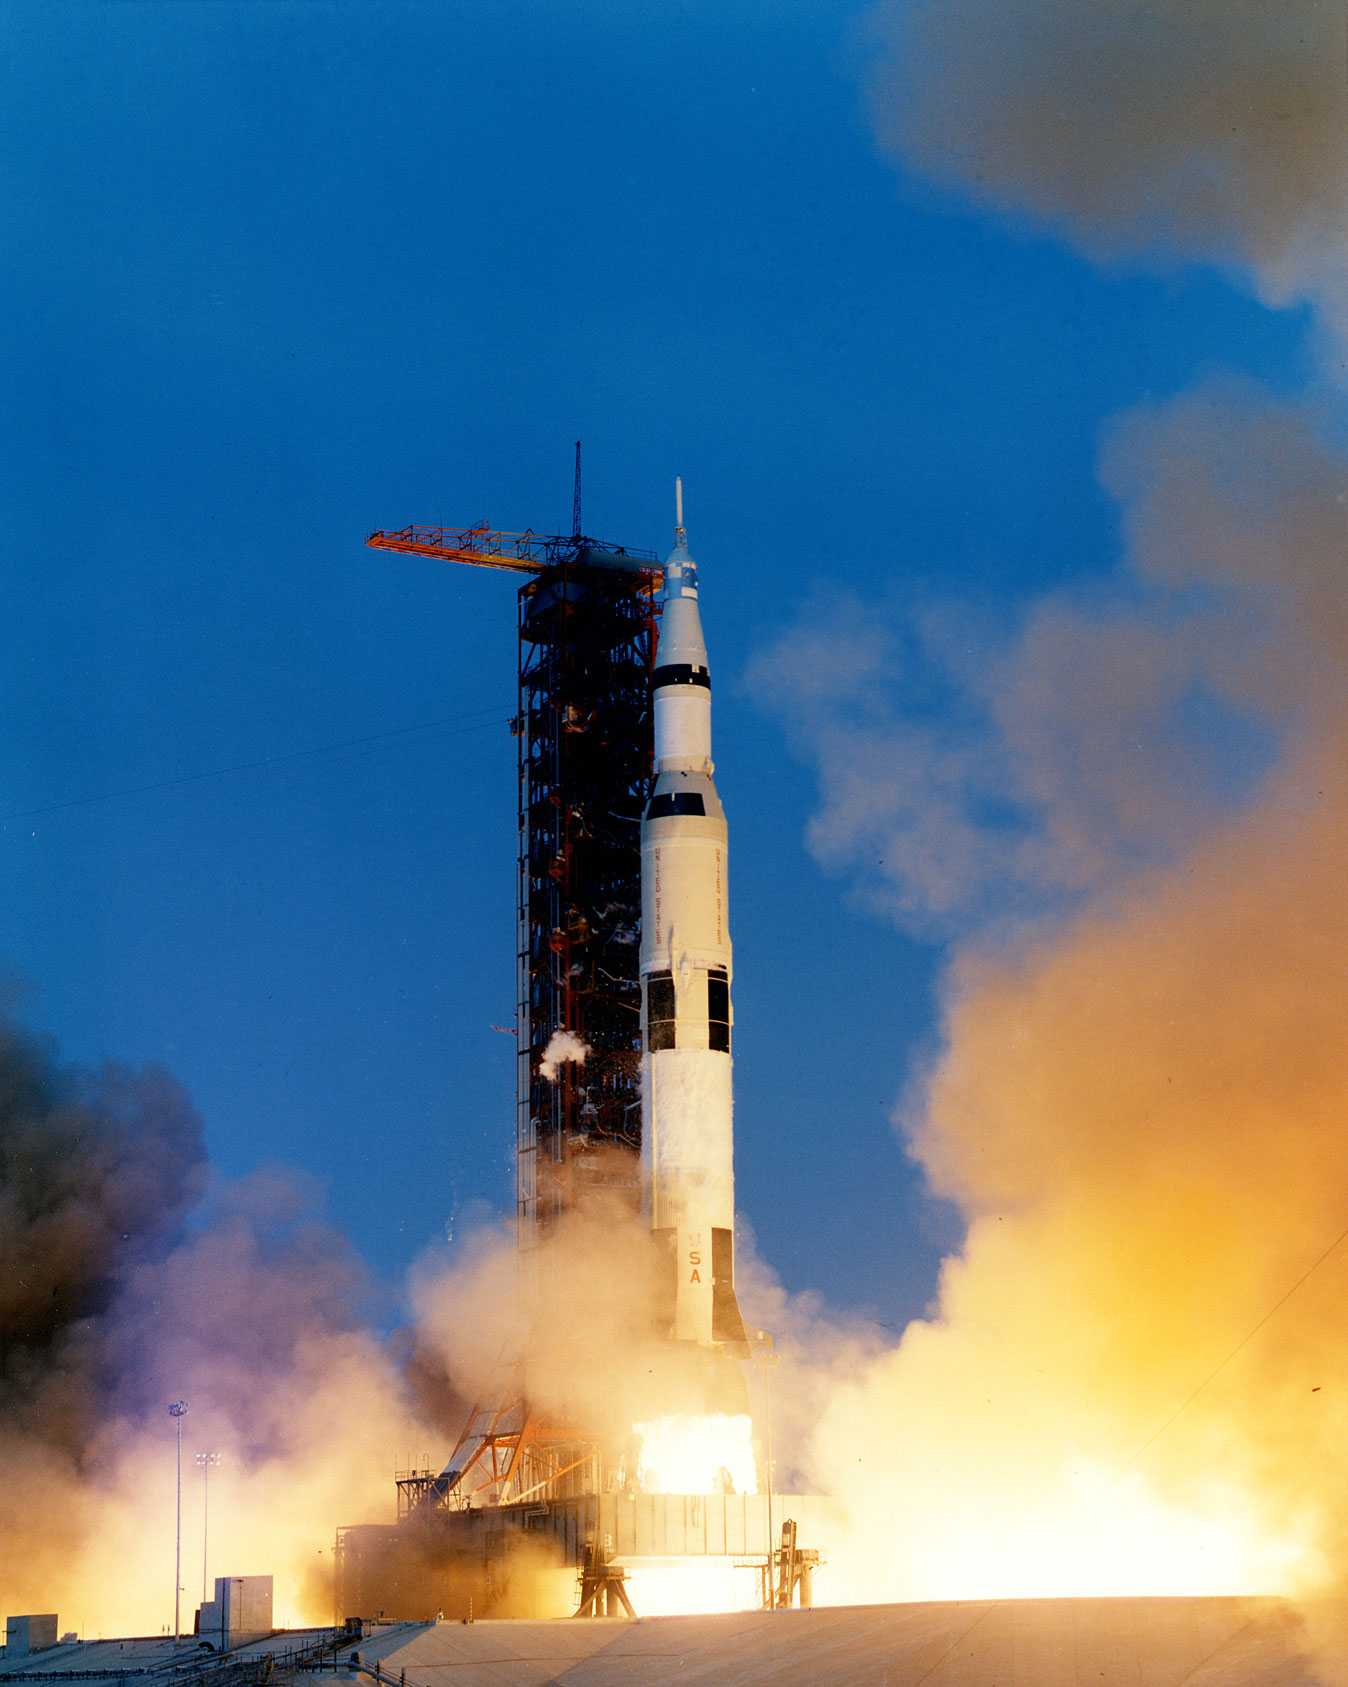 Apollo_13_liftoff-KSC-70PC-160HR.jpg